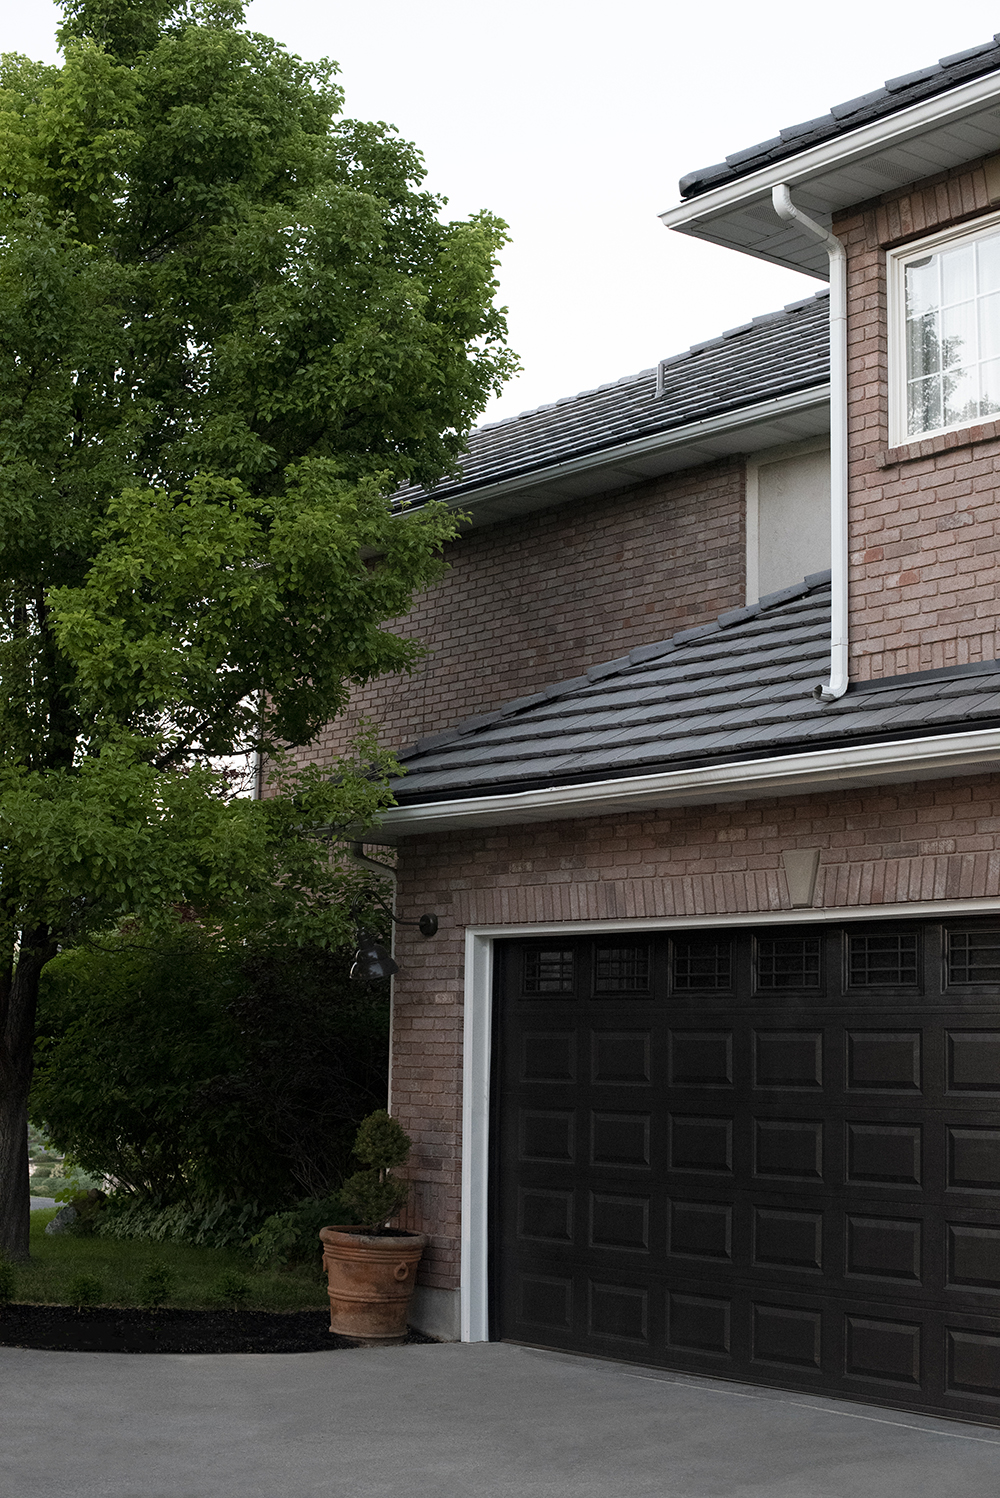 Our New Bartile Roof - roomfortuesday.com